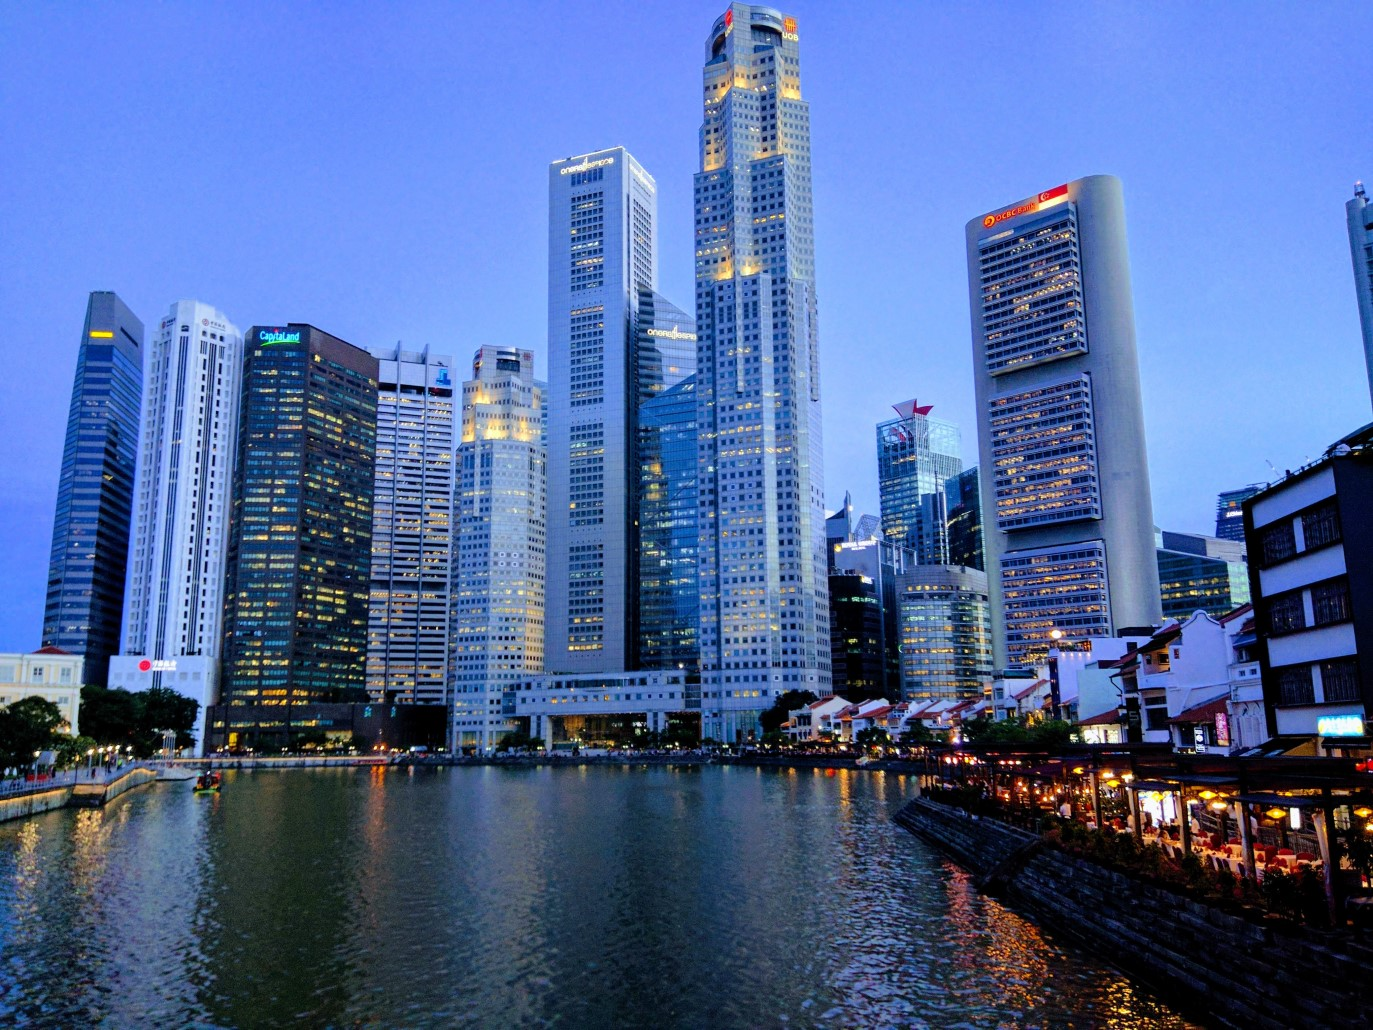 Skyscrapers in Raffles Place